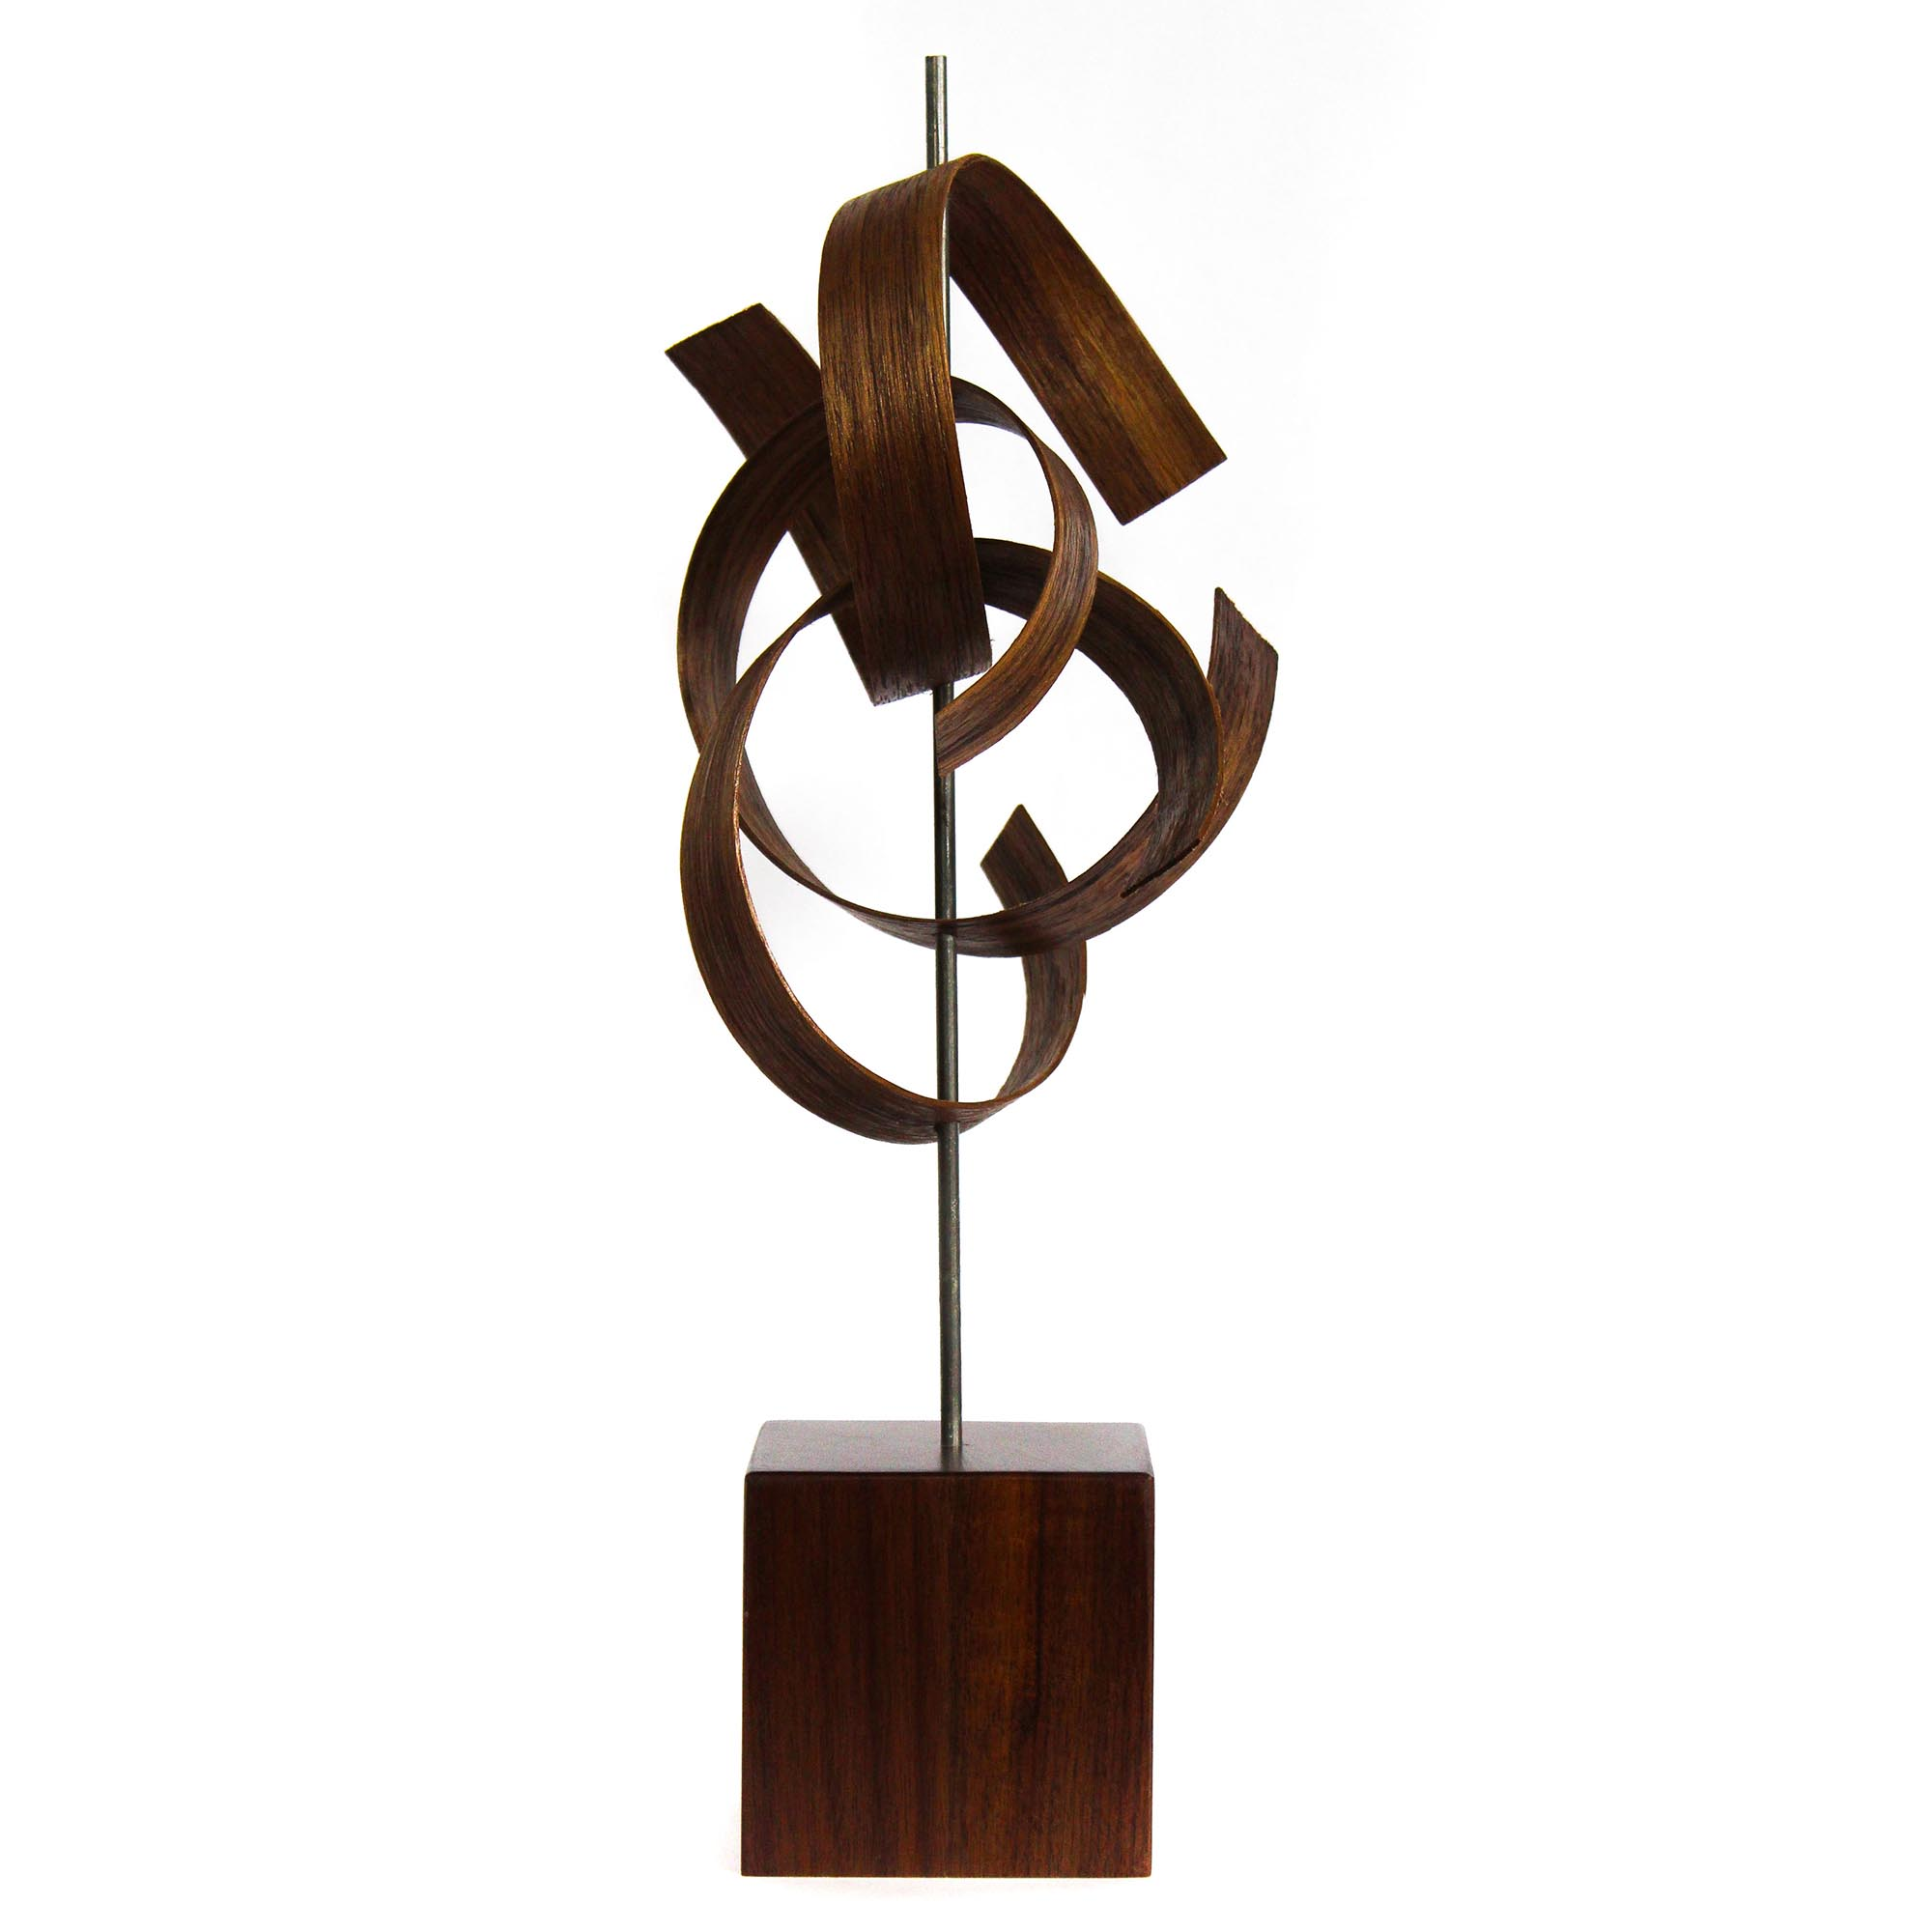 Scribble by Jackson Wright - Modern Wood Sculpture, Mid-Century Home Decor - Image 2